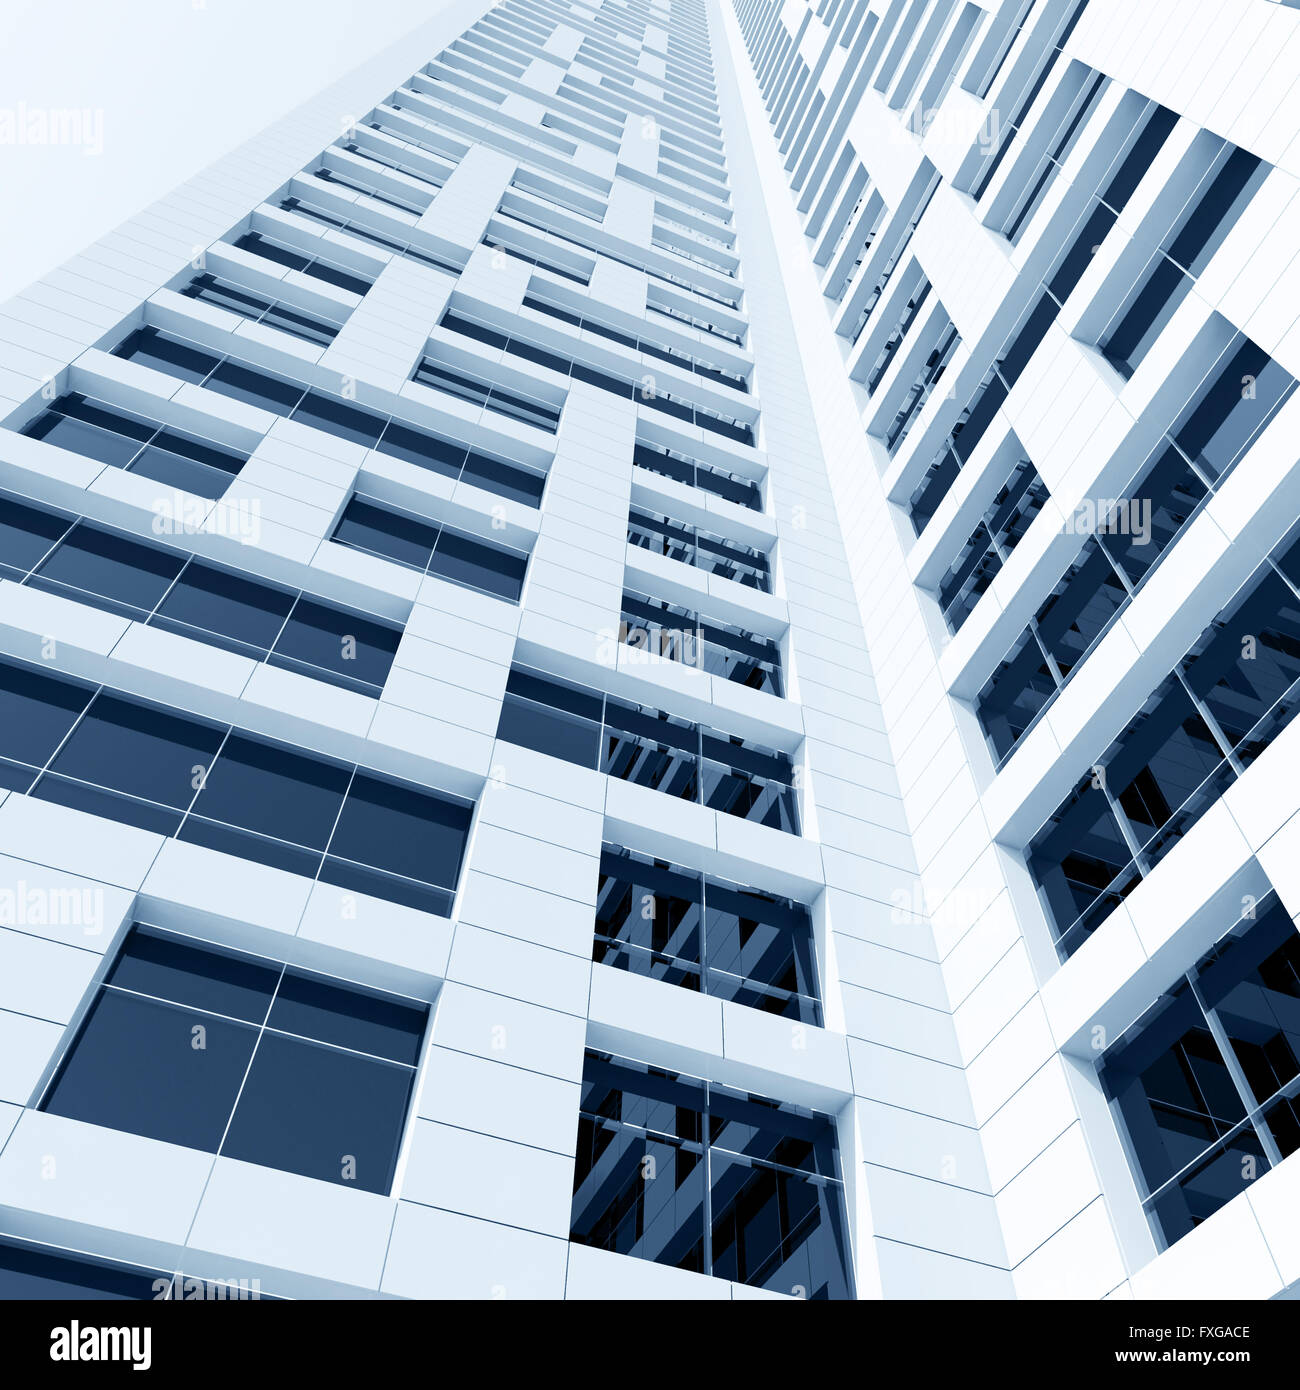 Modern Architecture Render abstract modern architecture. perspective of tall building with